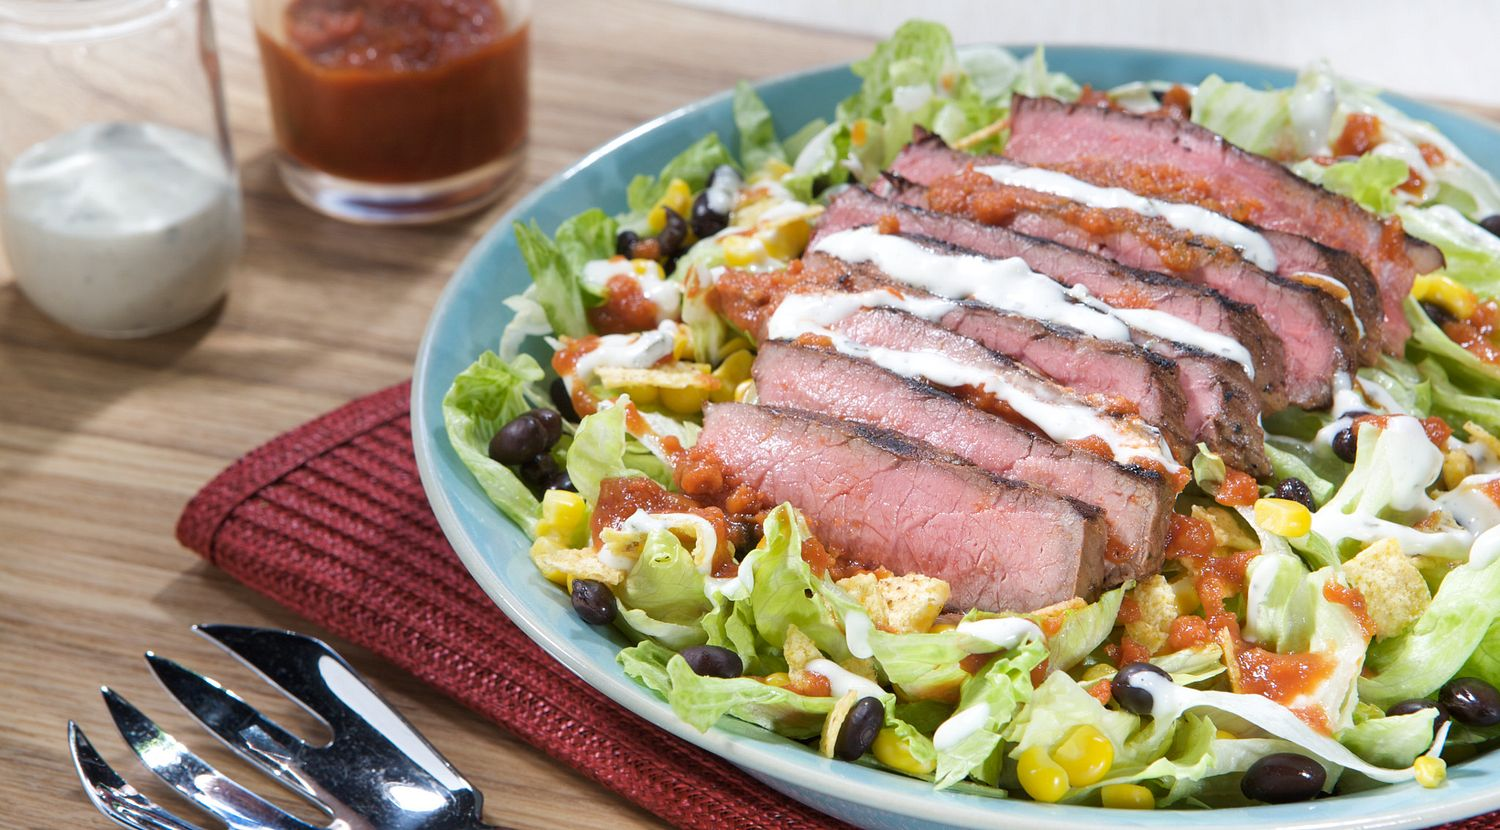 Red, White & Beef Salad